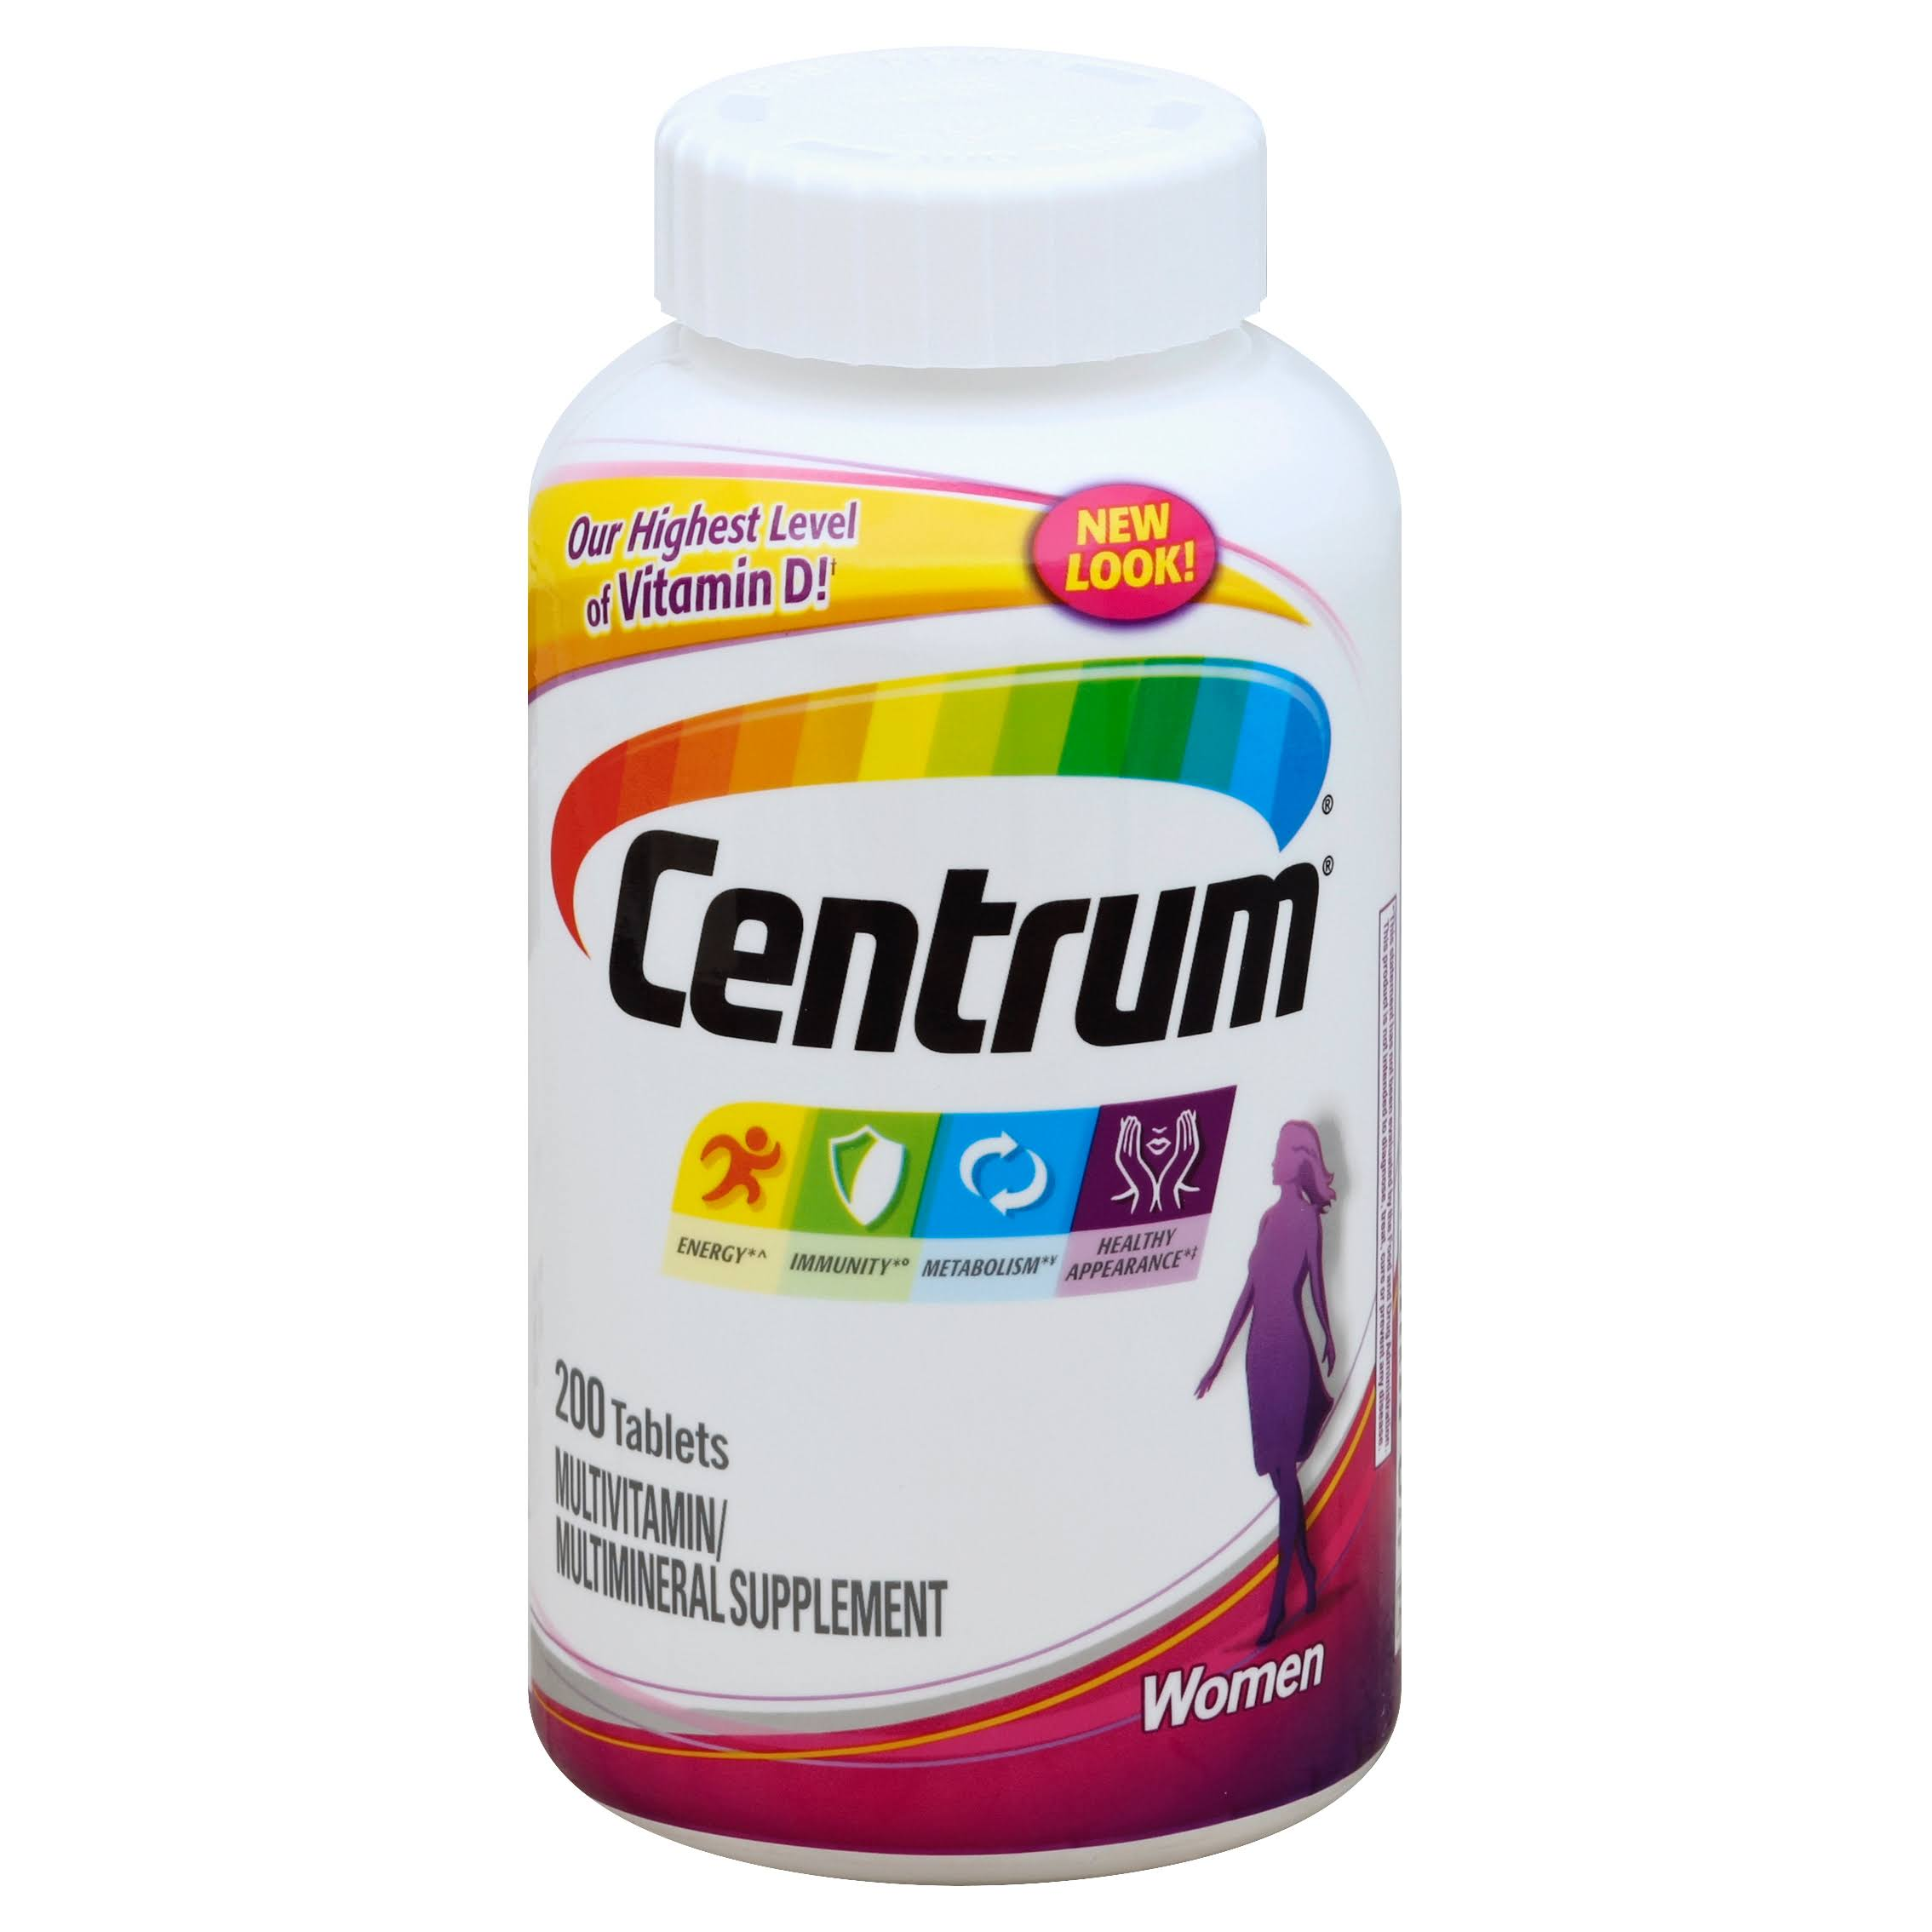 Centrum Women's Multivitamin Supplement - 200 Tablets